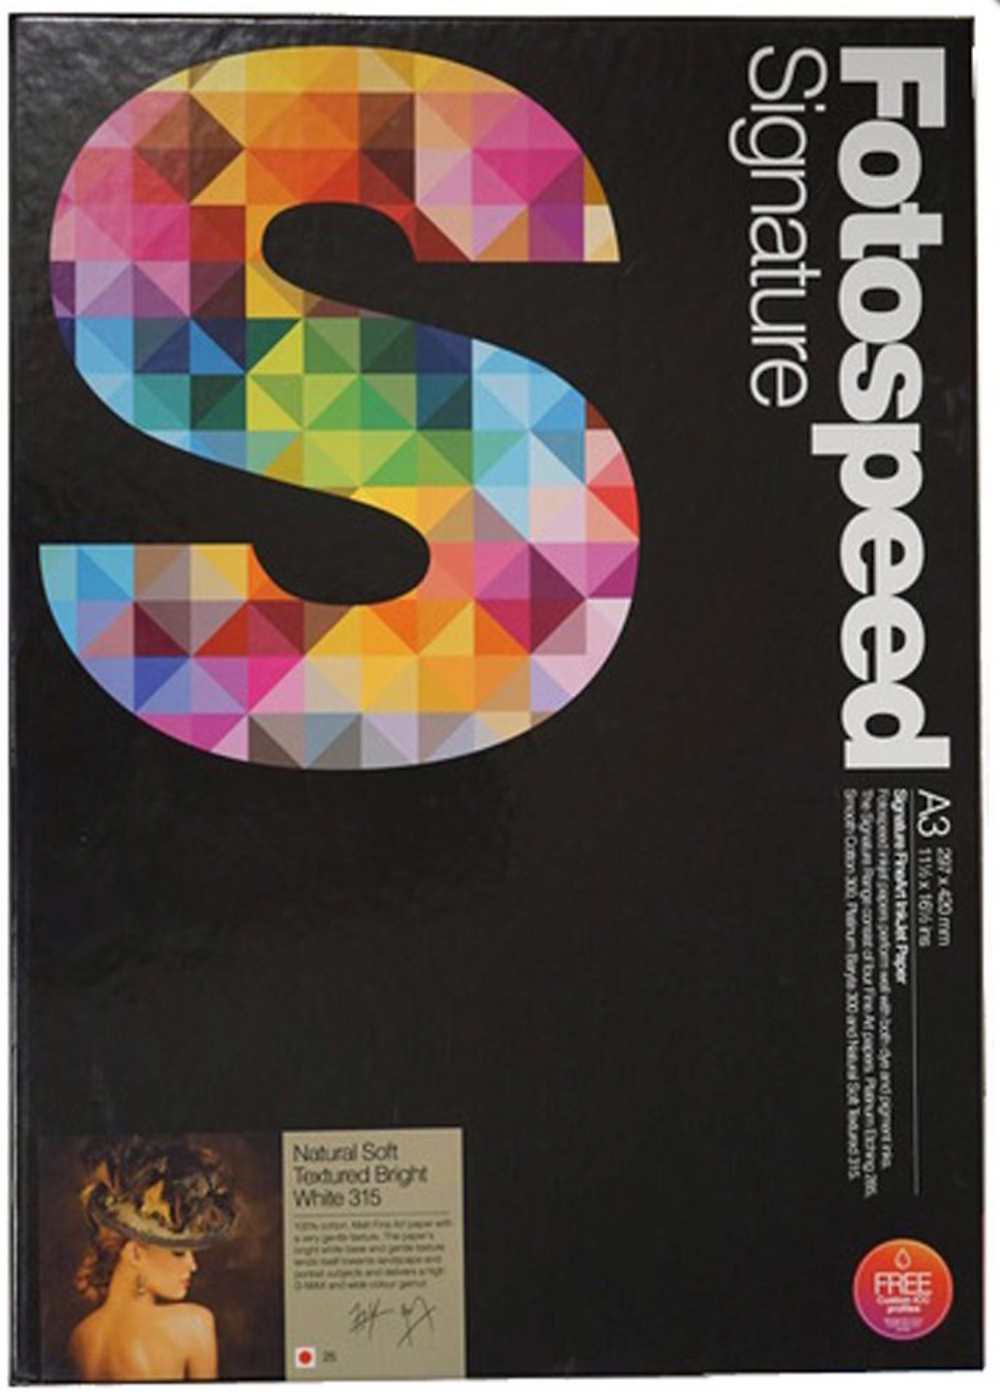 Fotospeed nst a3